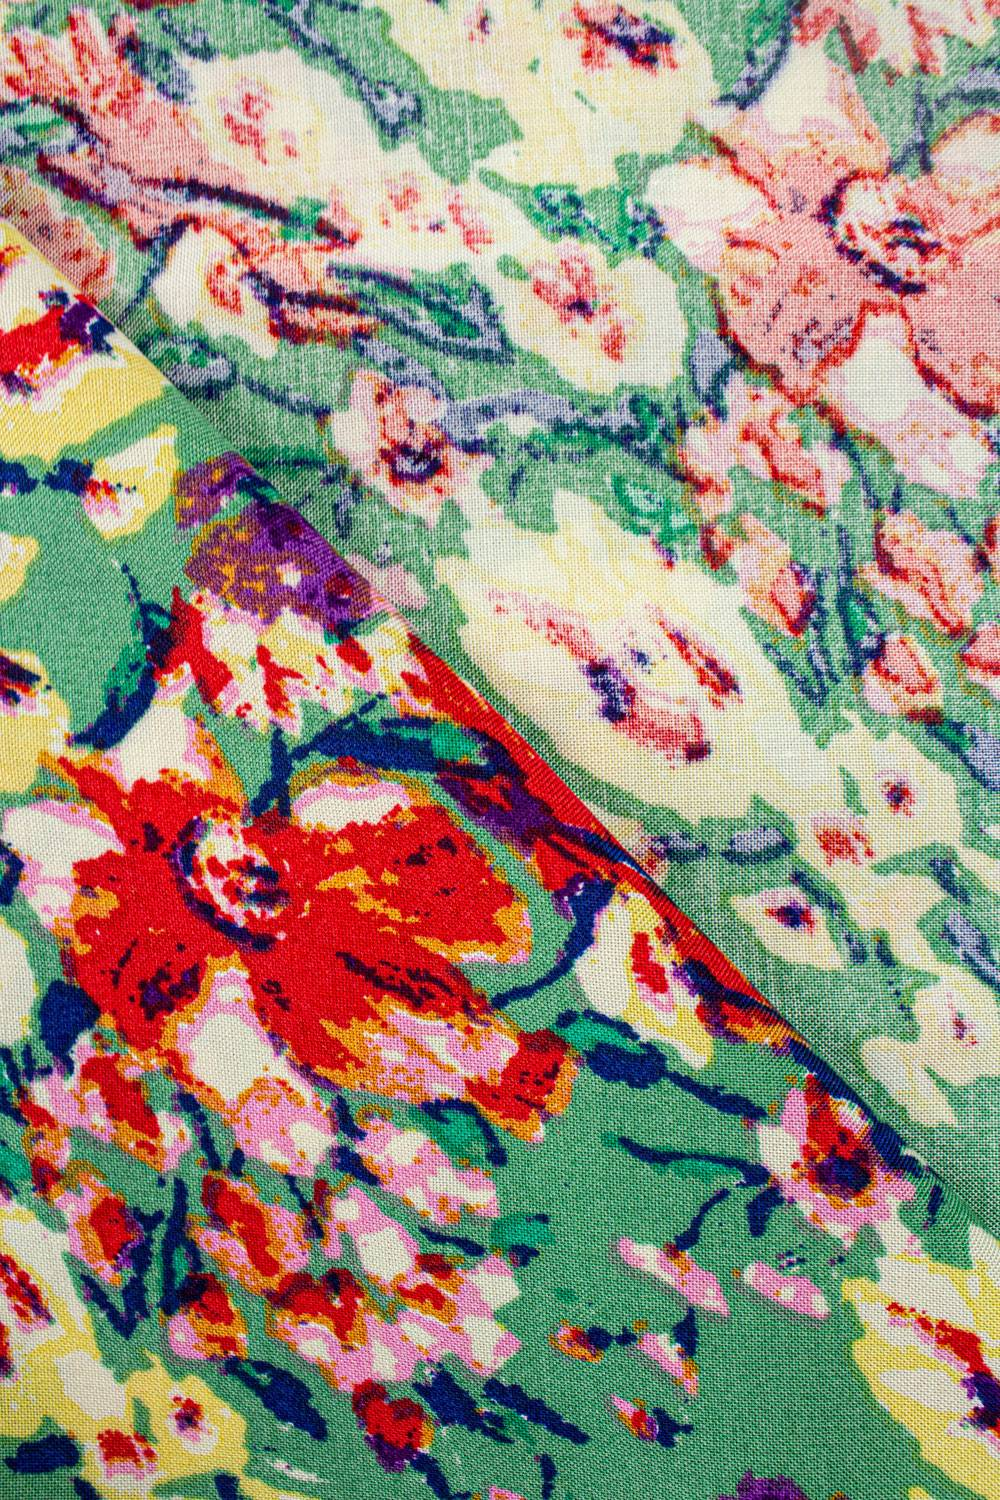 Fabric - Viscose - Green With Red & Yellow Flowers - 140 cm - 130 g/m2